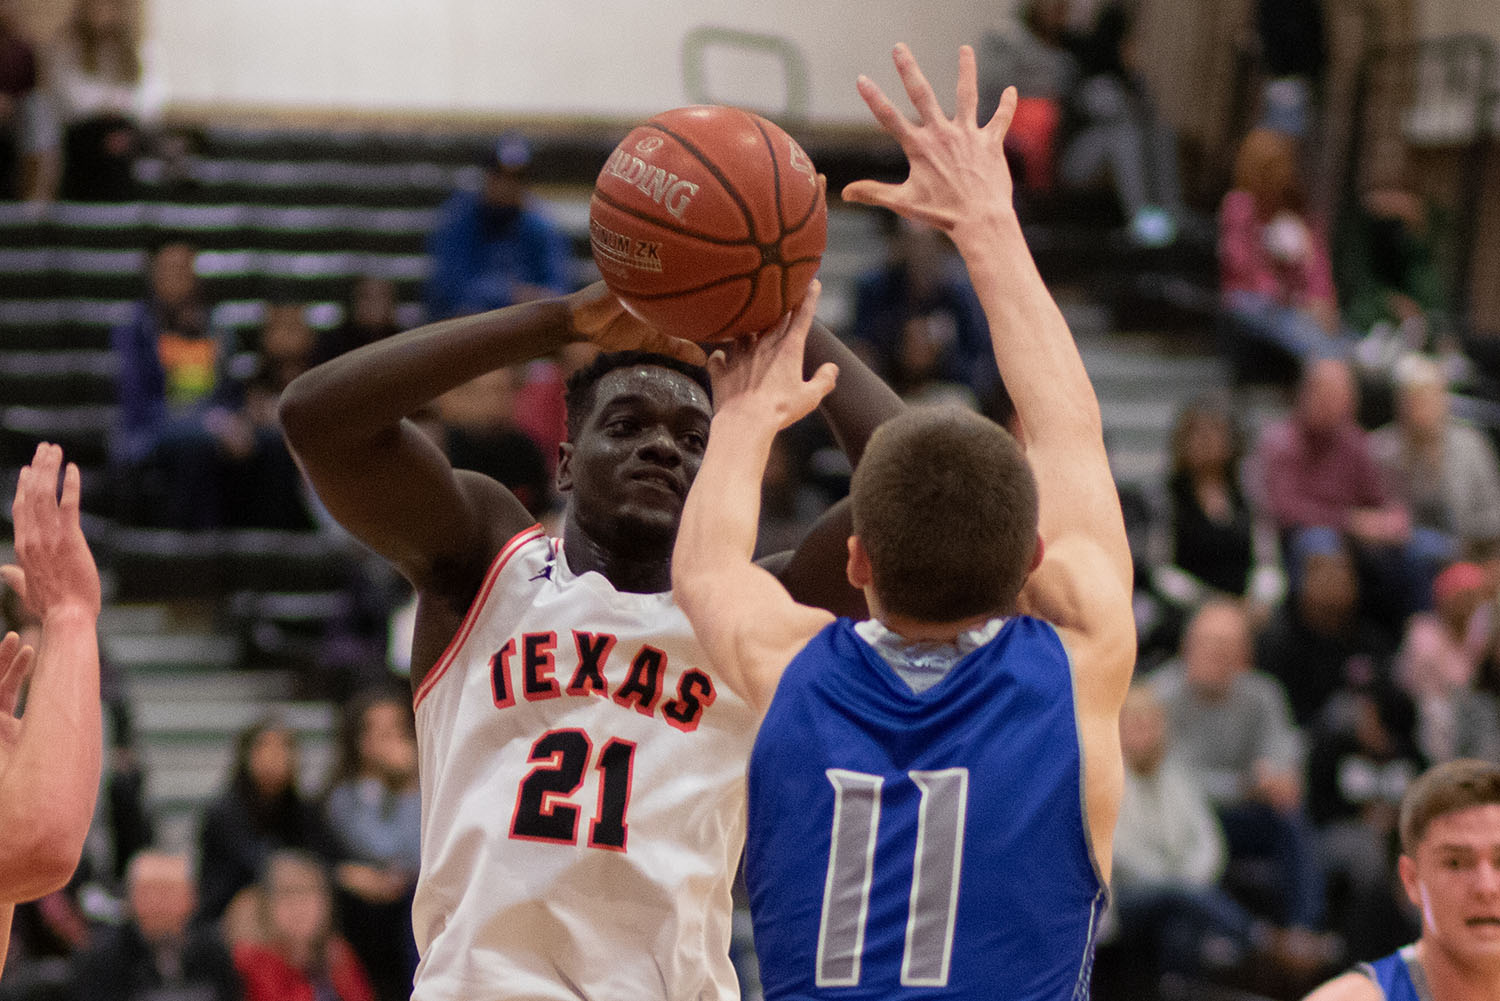 Senior Demarquis Vaughn attempts to pass the ball. The Tigers won against Lindale on Jan. 15.